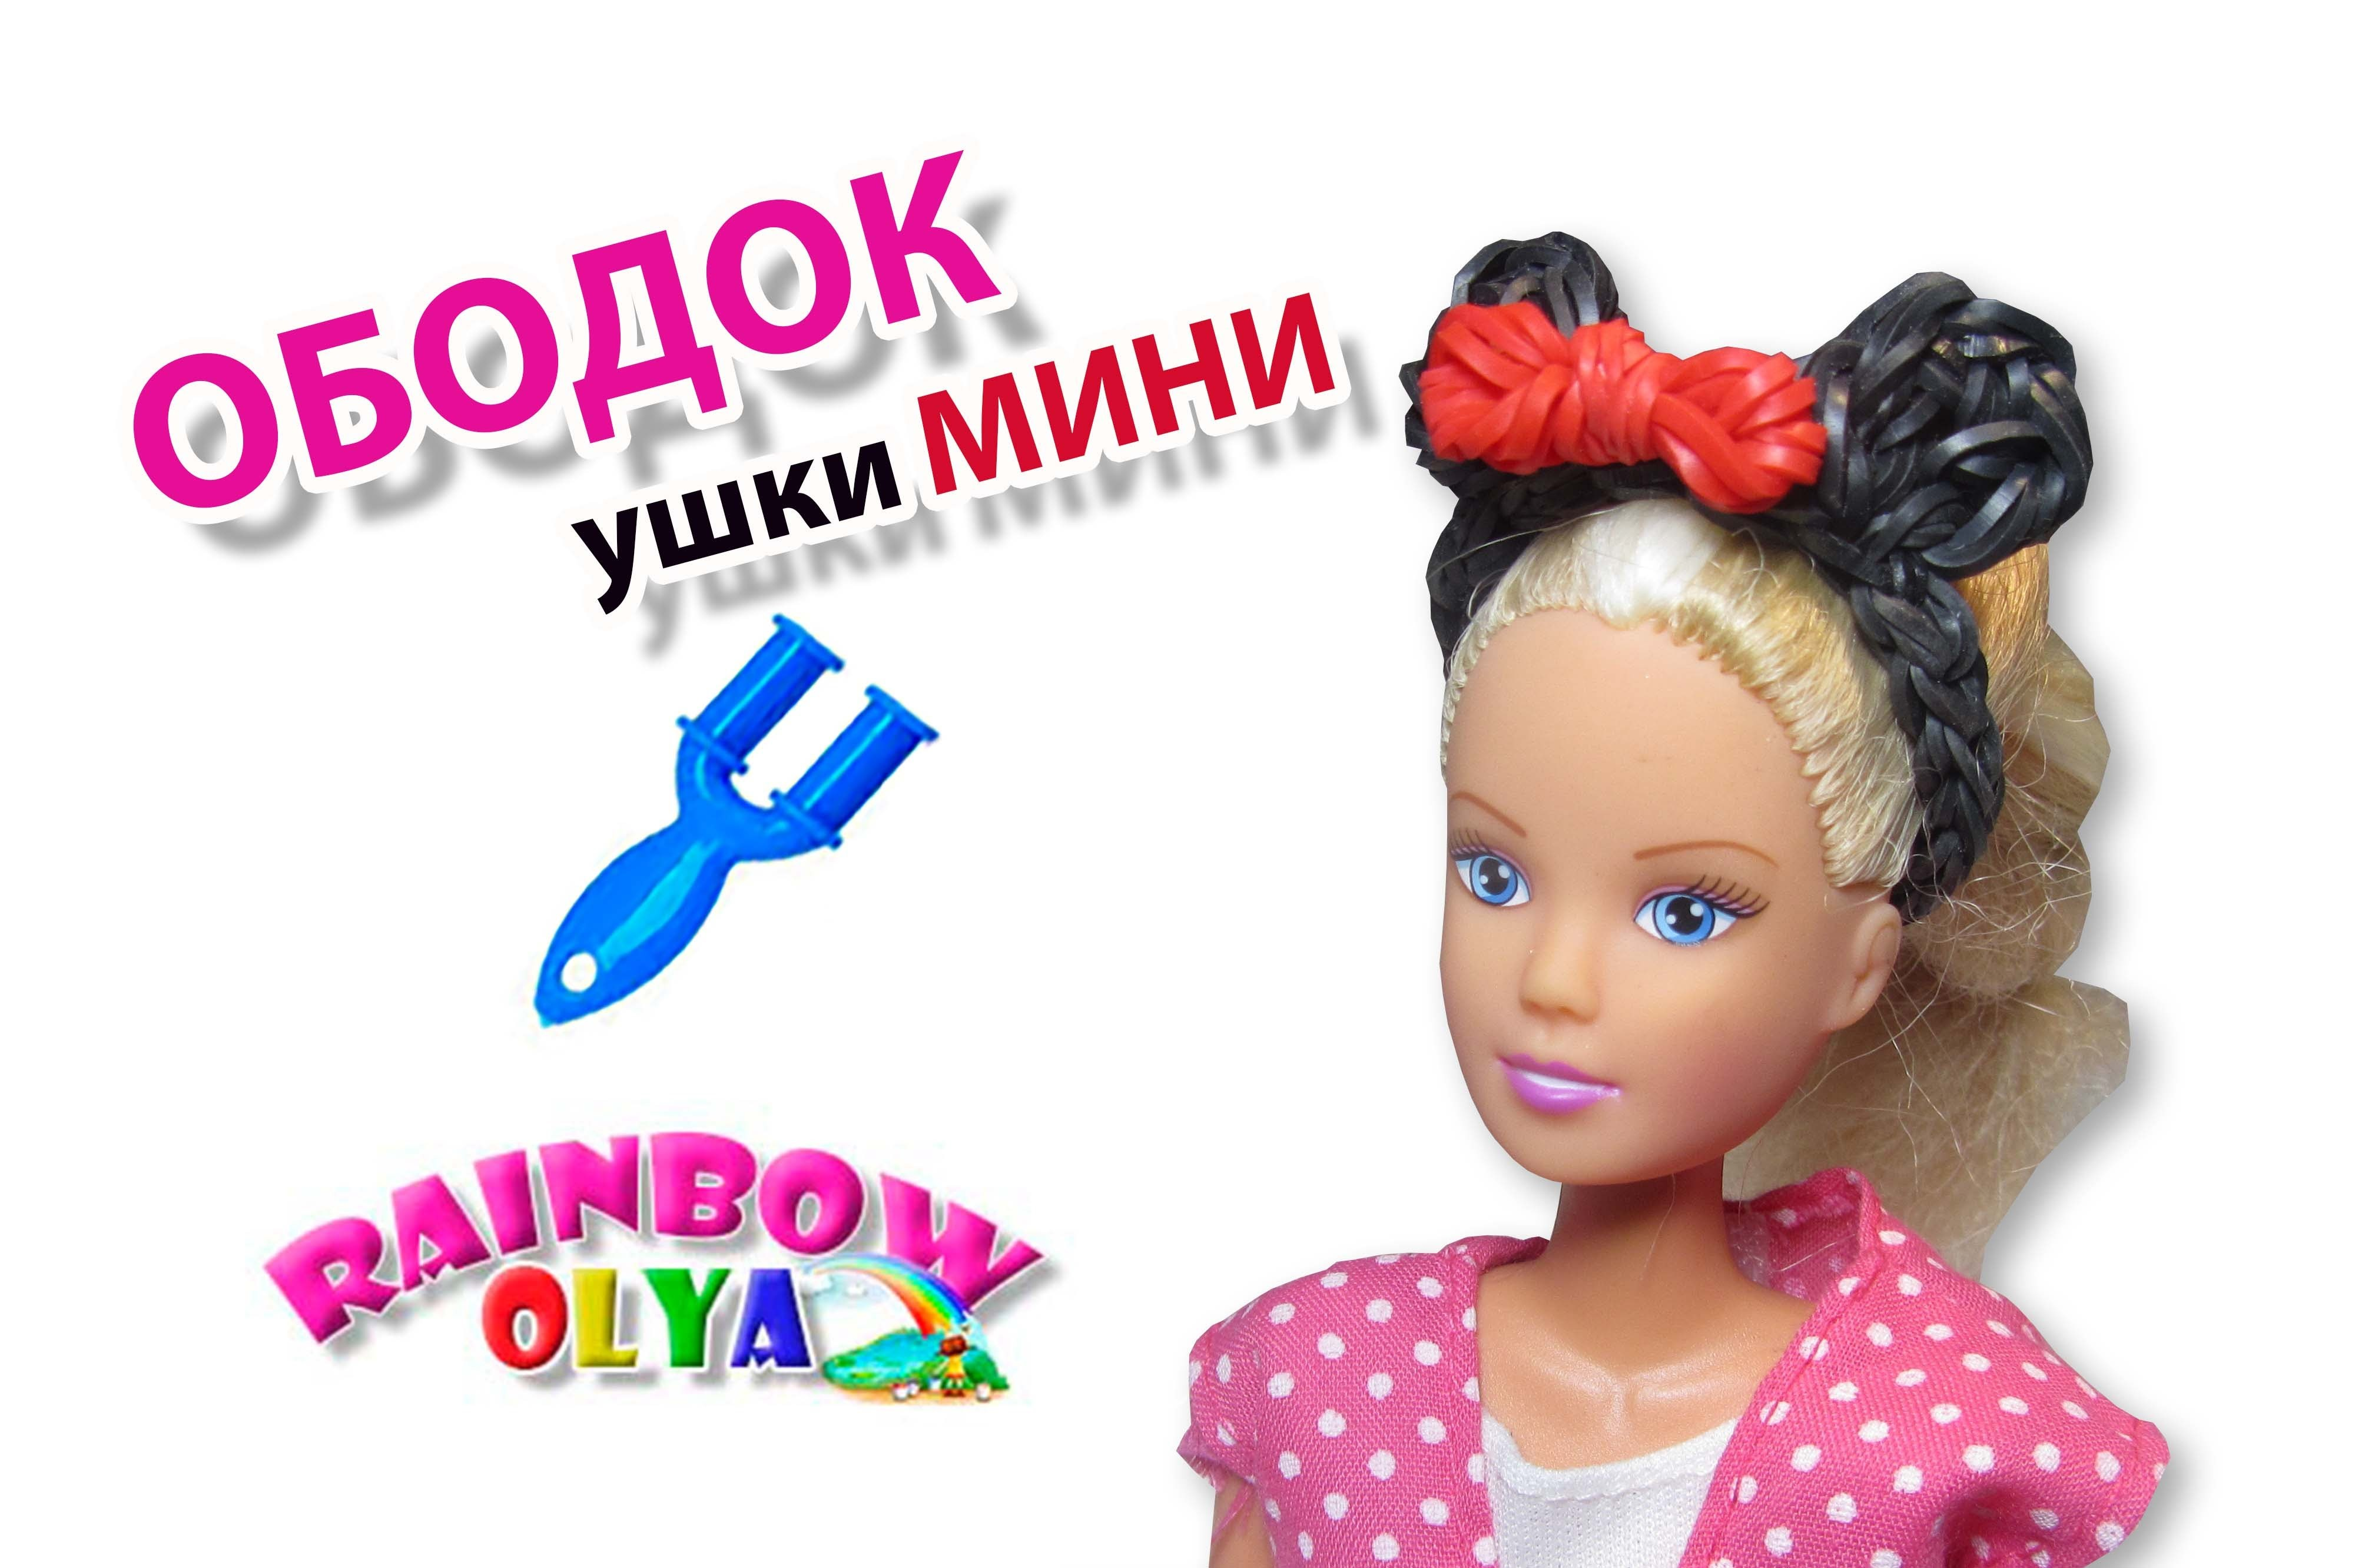 Диадема для куклы УШКИ МИНИ из резинок на рогатке | Barbie Rainbow Loom